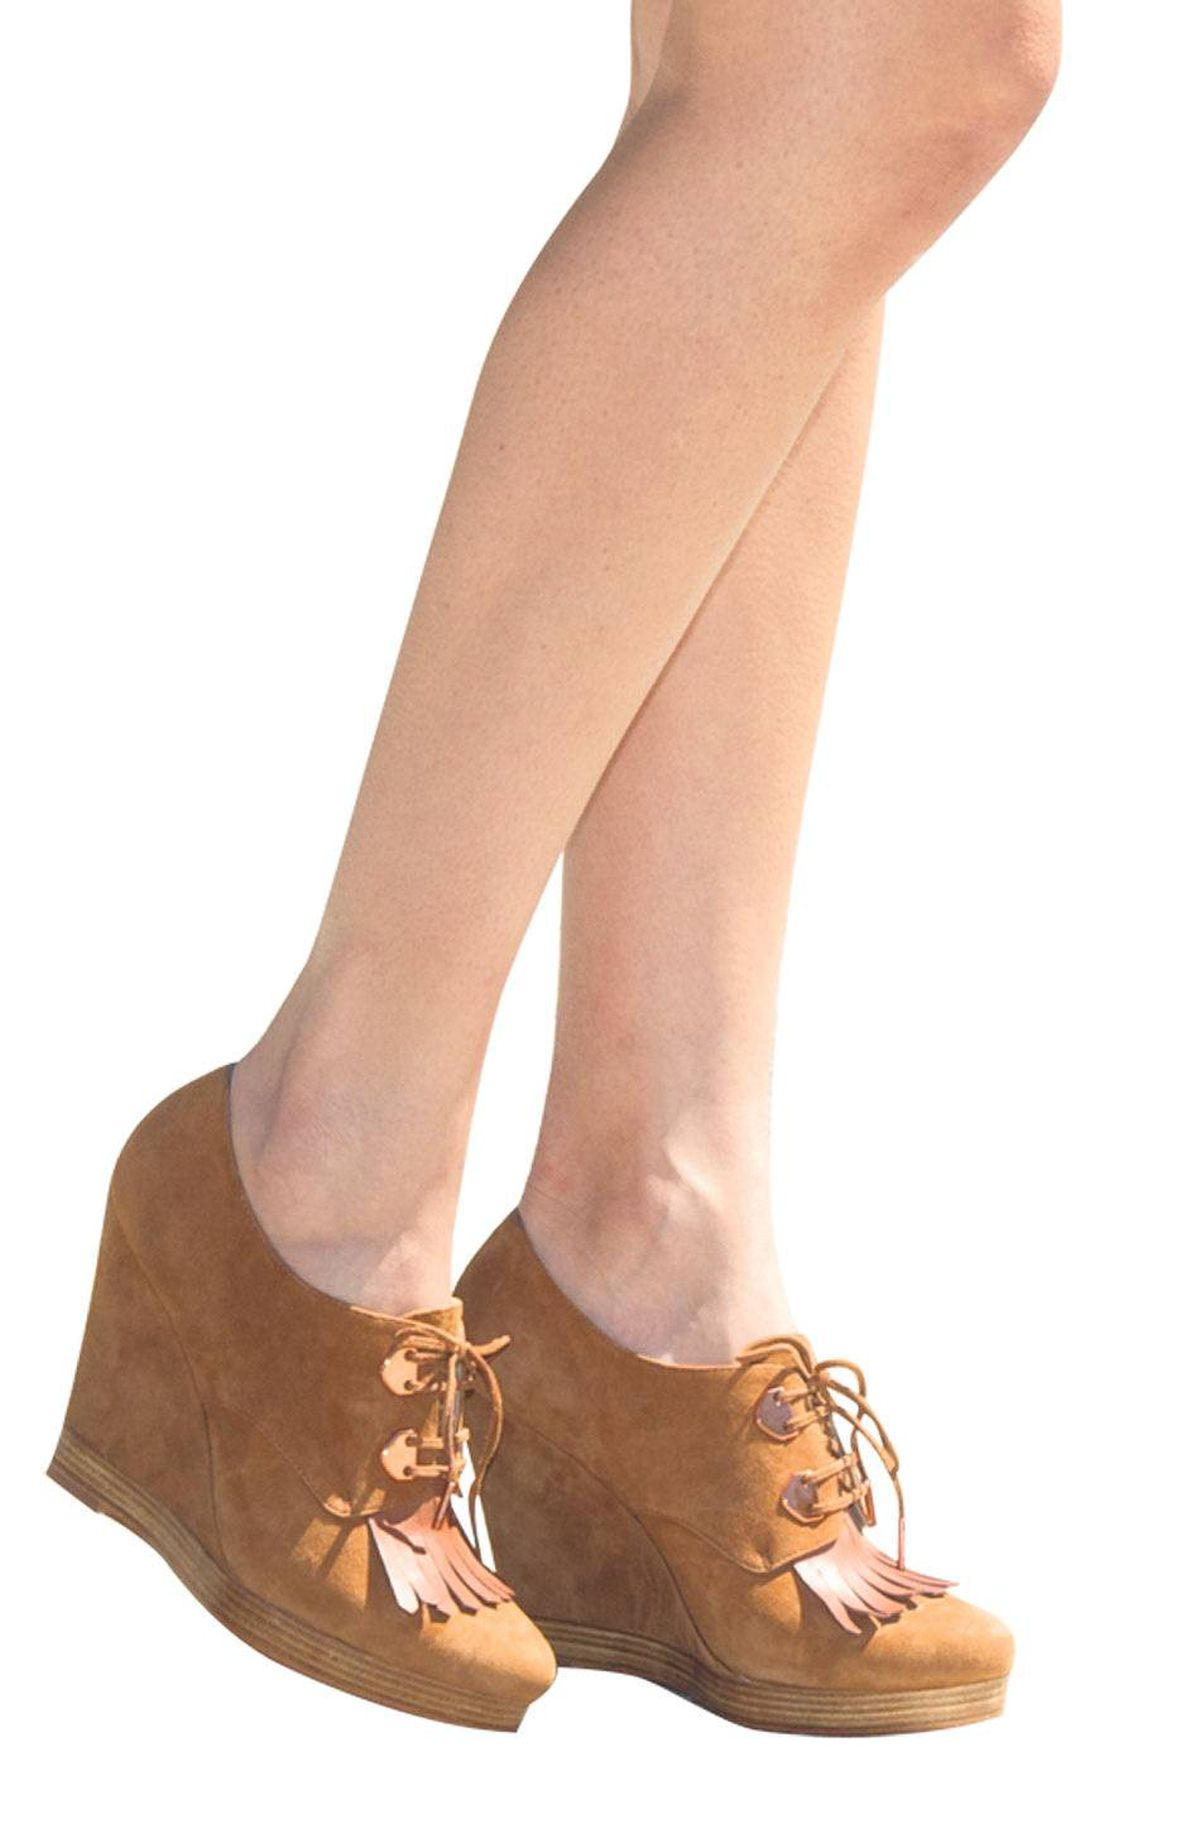 An all-suede wedge with tassel detail makes an updated seventies statement. Kors Michael Kors wedges, $275.